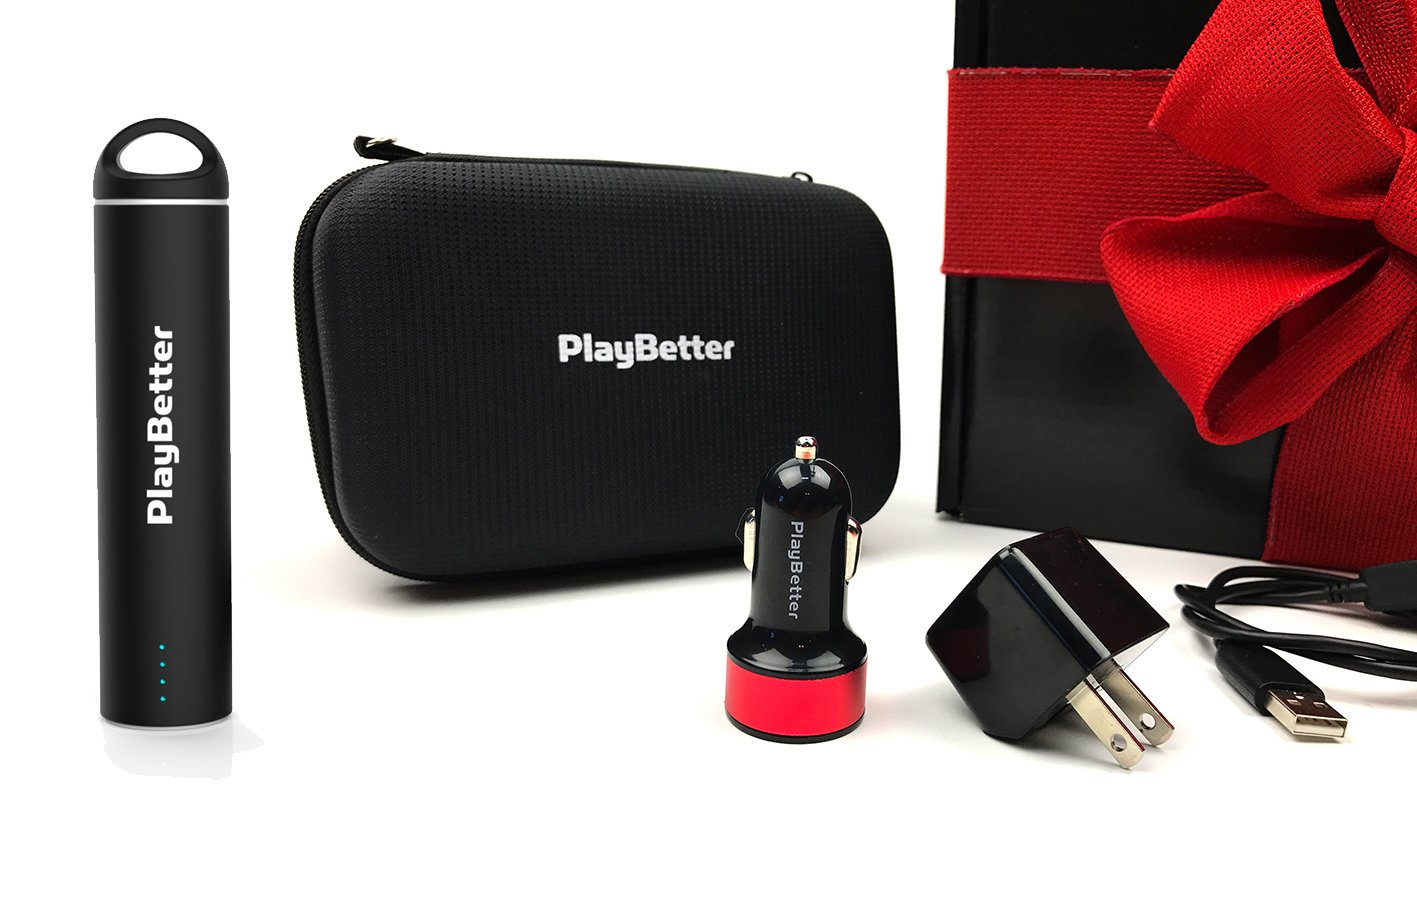 Garmin Edge 1030 Cycle Gift Box Bundle | with Garmin Chest Strap HRM, Speed & Cadence Sensors, PlayBetter Portable USB Charger, Car/Wall Adapters, Hard Case, Bike Mounts | GPS Bike Computer | Gift Box by PlayBetter (Image #6)